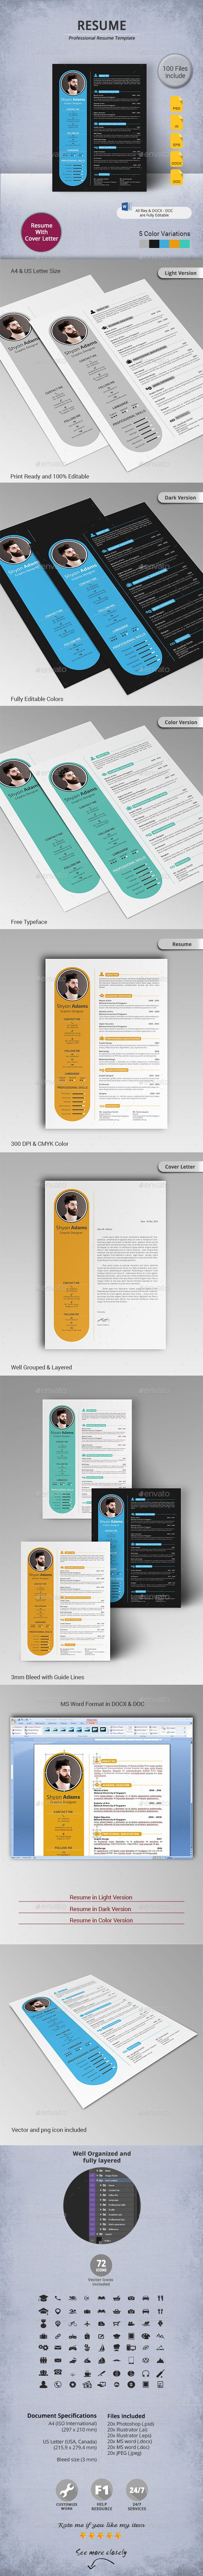 #Resume - Resumes #Stationery Download here: https://graphicriver.net/item/resume/11119597?ref=artgallery8